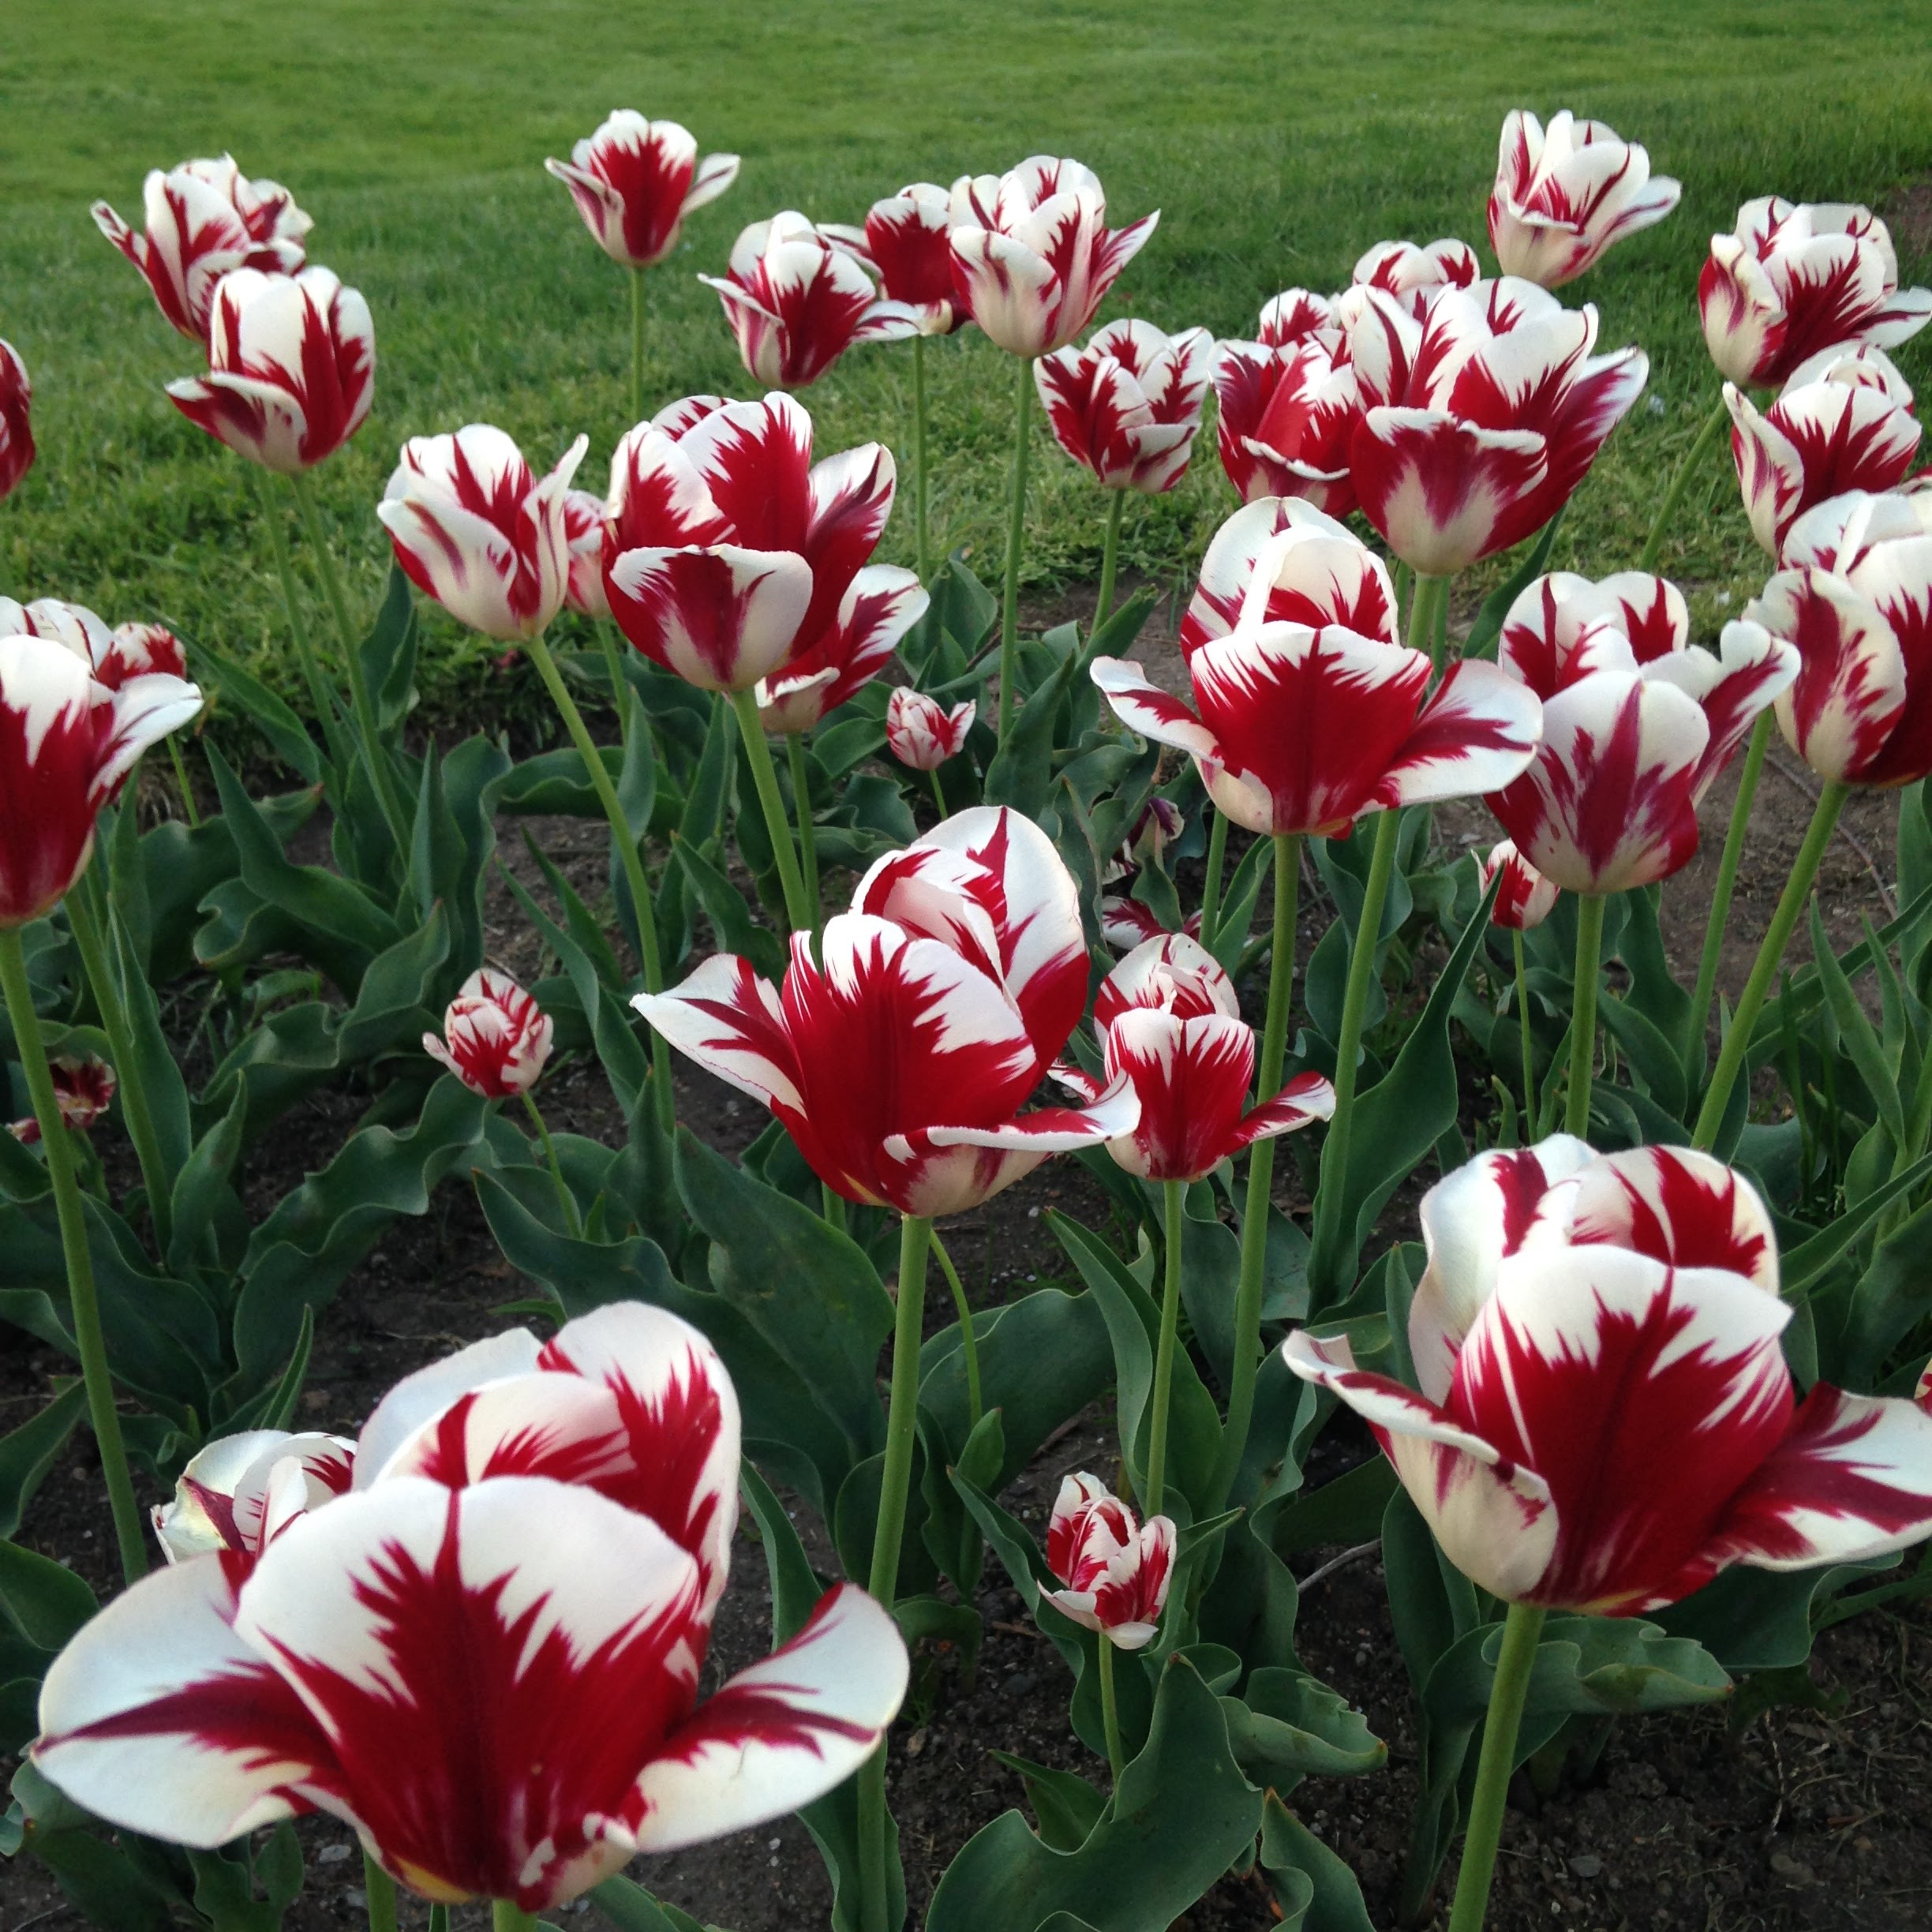 red white striped tulips